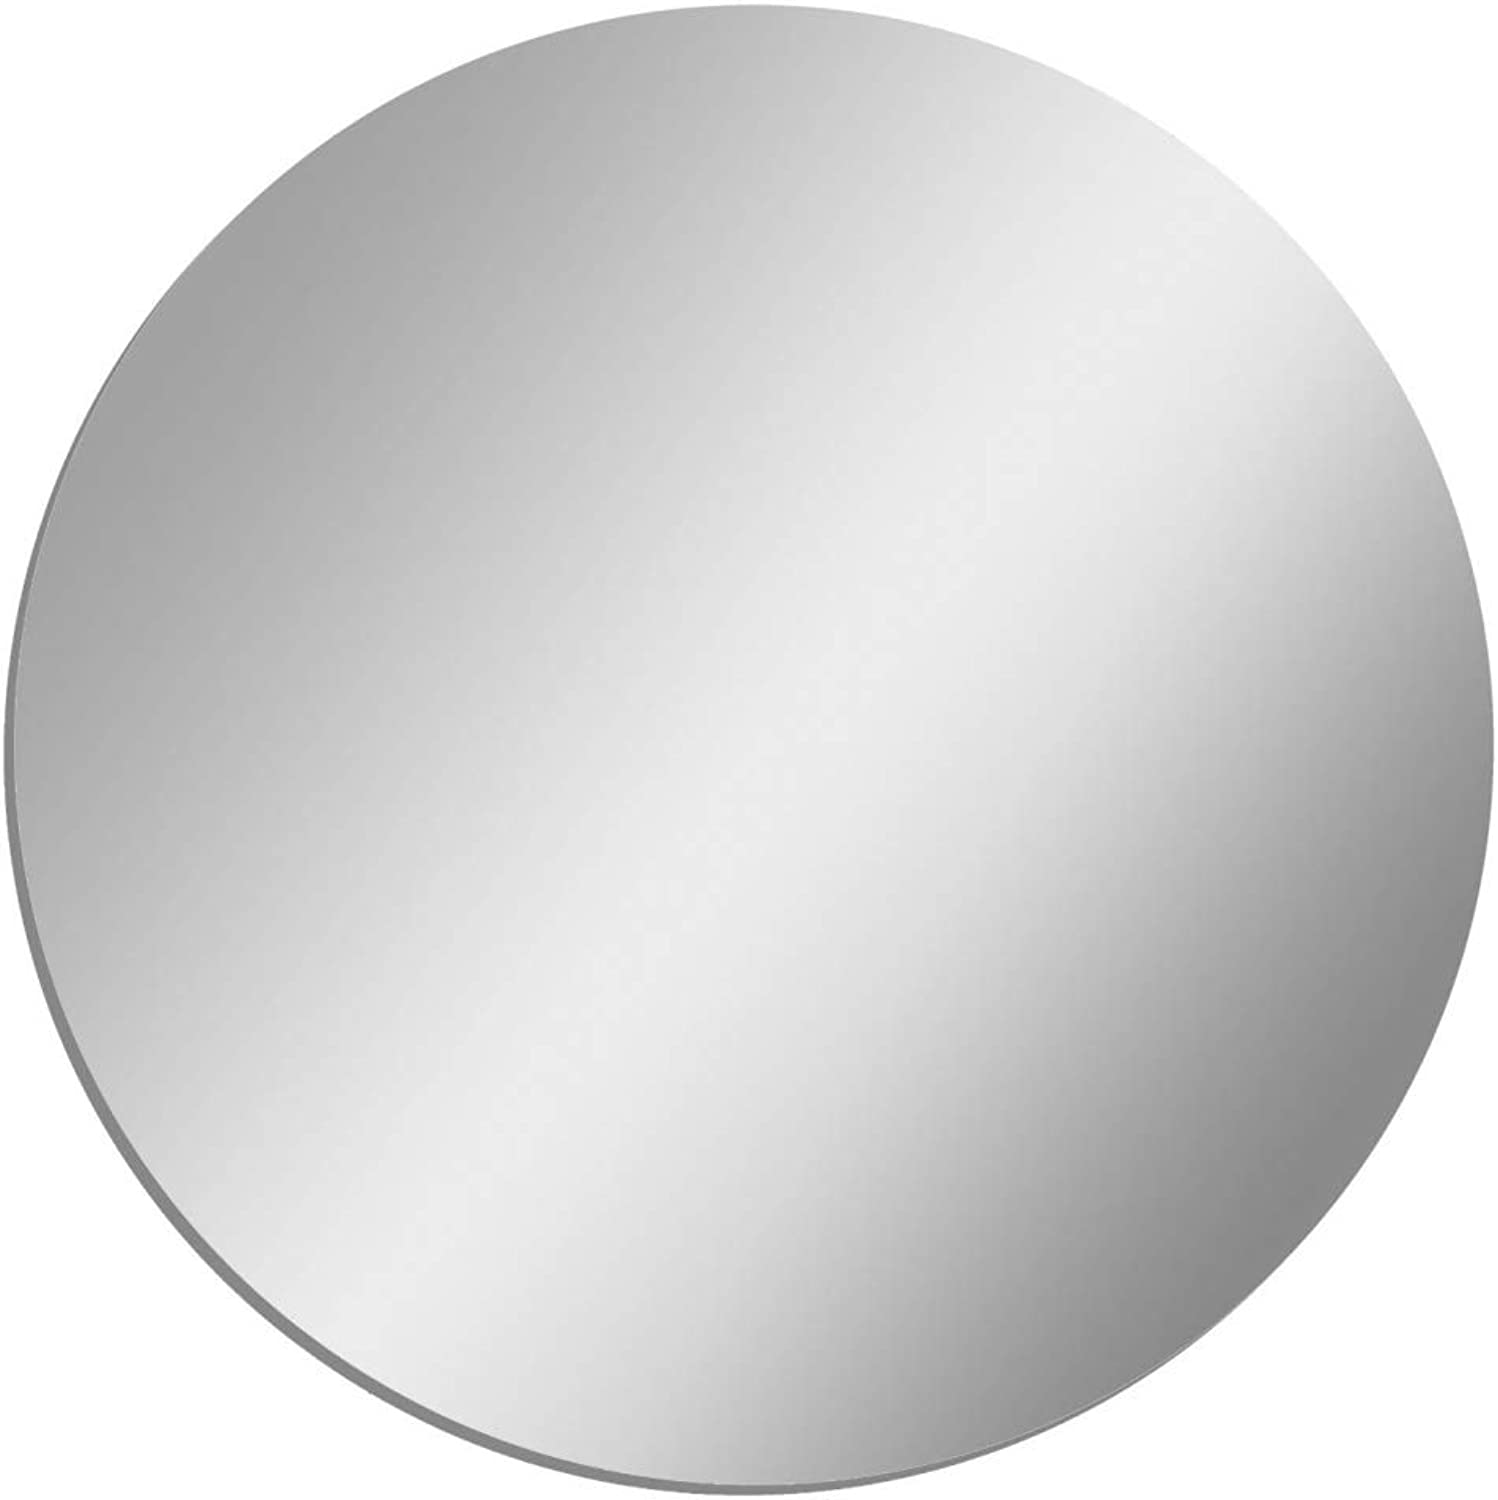 Circle Shatterproof Acrylic Safety Mirror - 12in x 12in